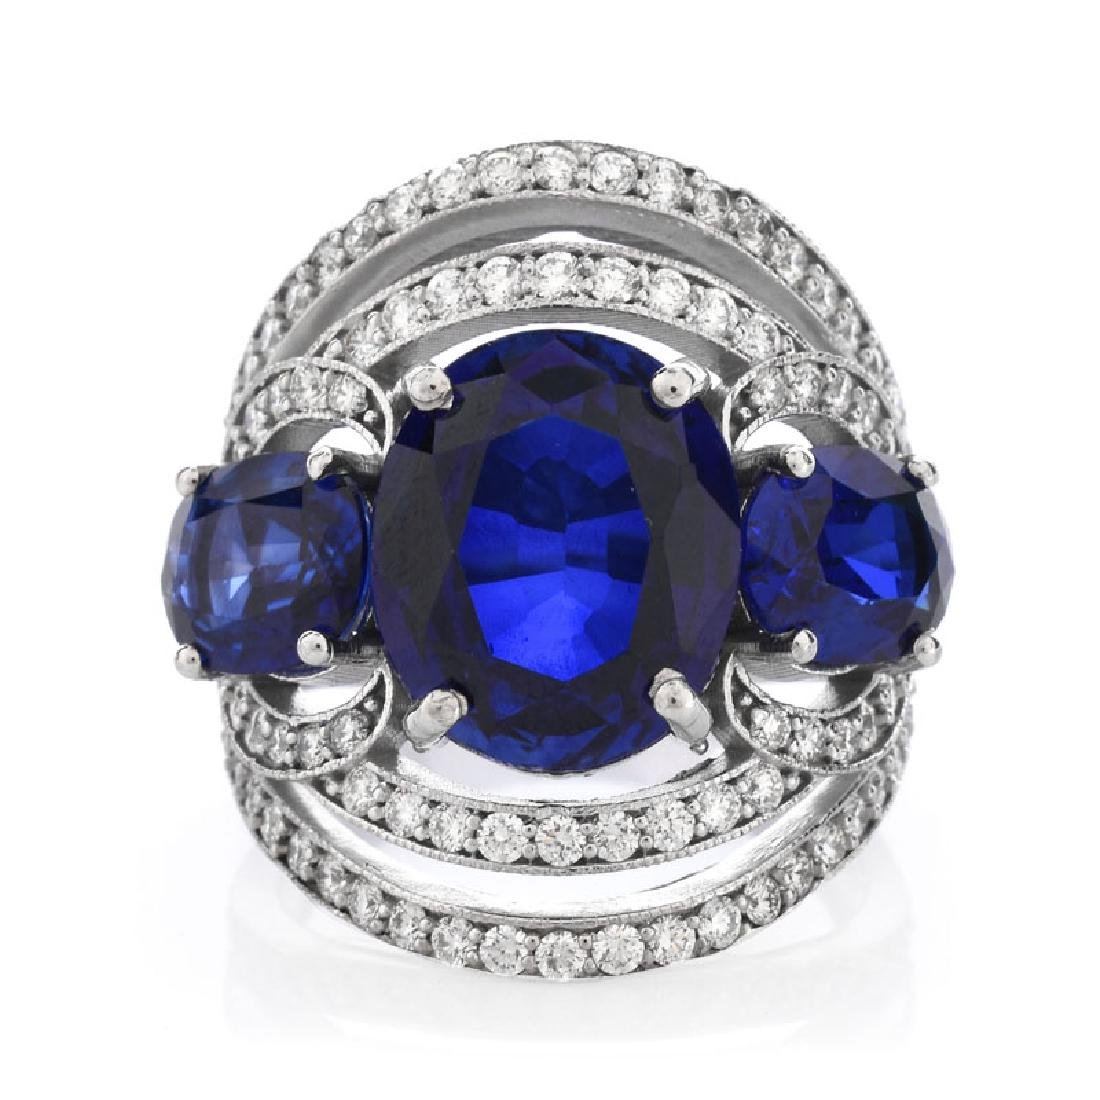 Approx. 10.30 Carat Oval Cut Synthetic Sapphire, 1.20 - 2